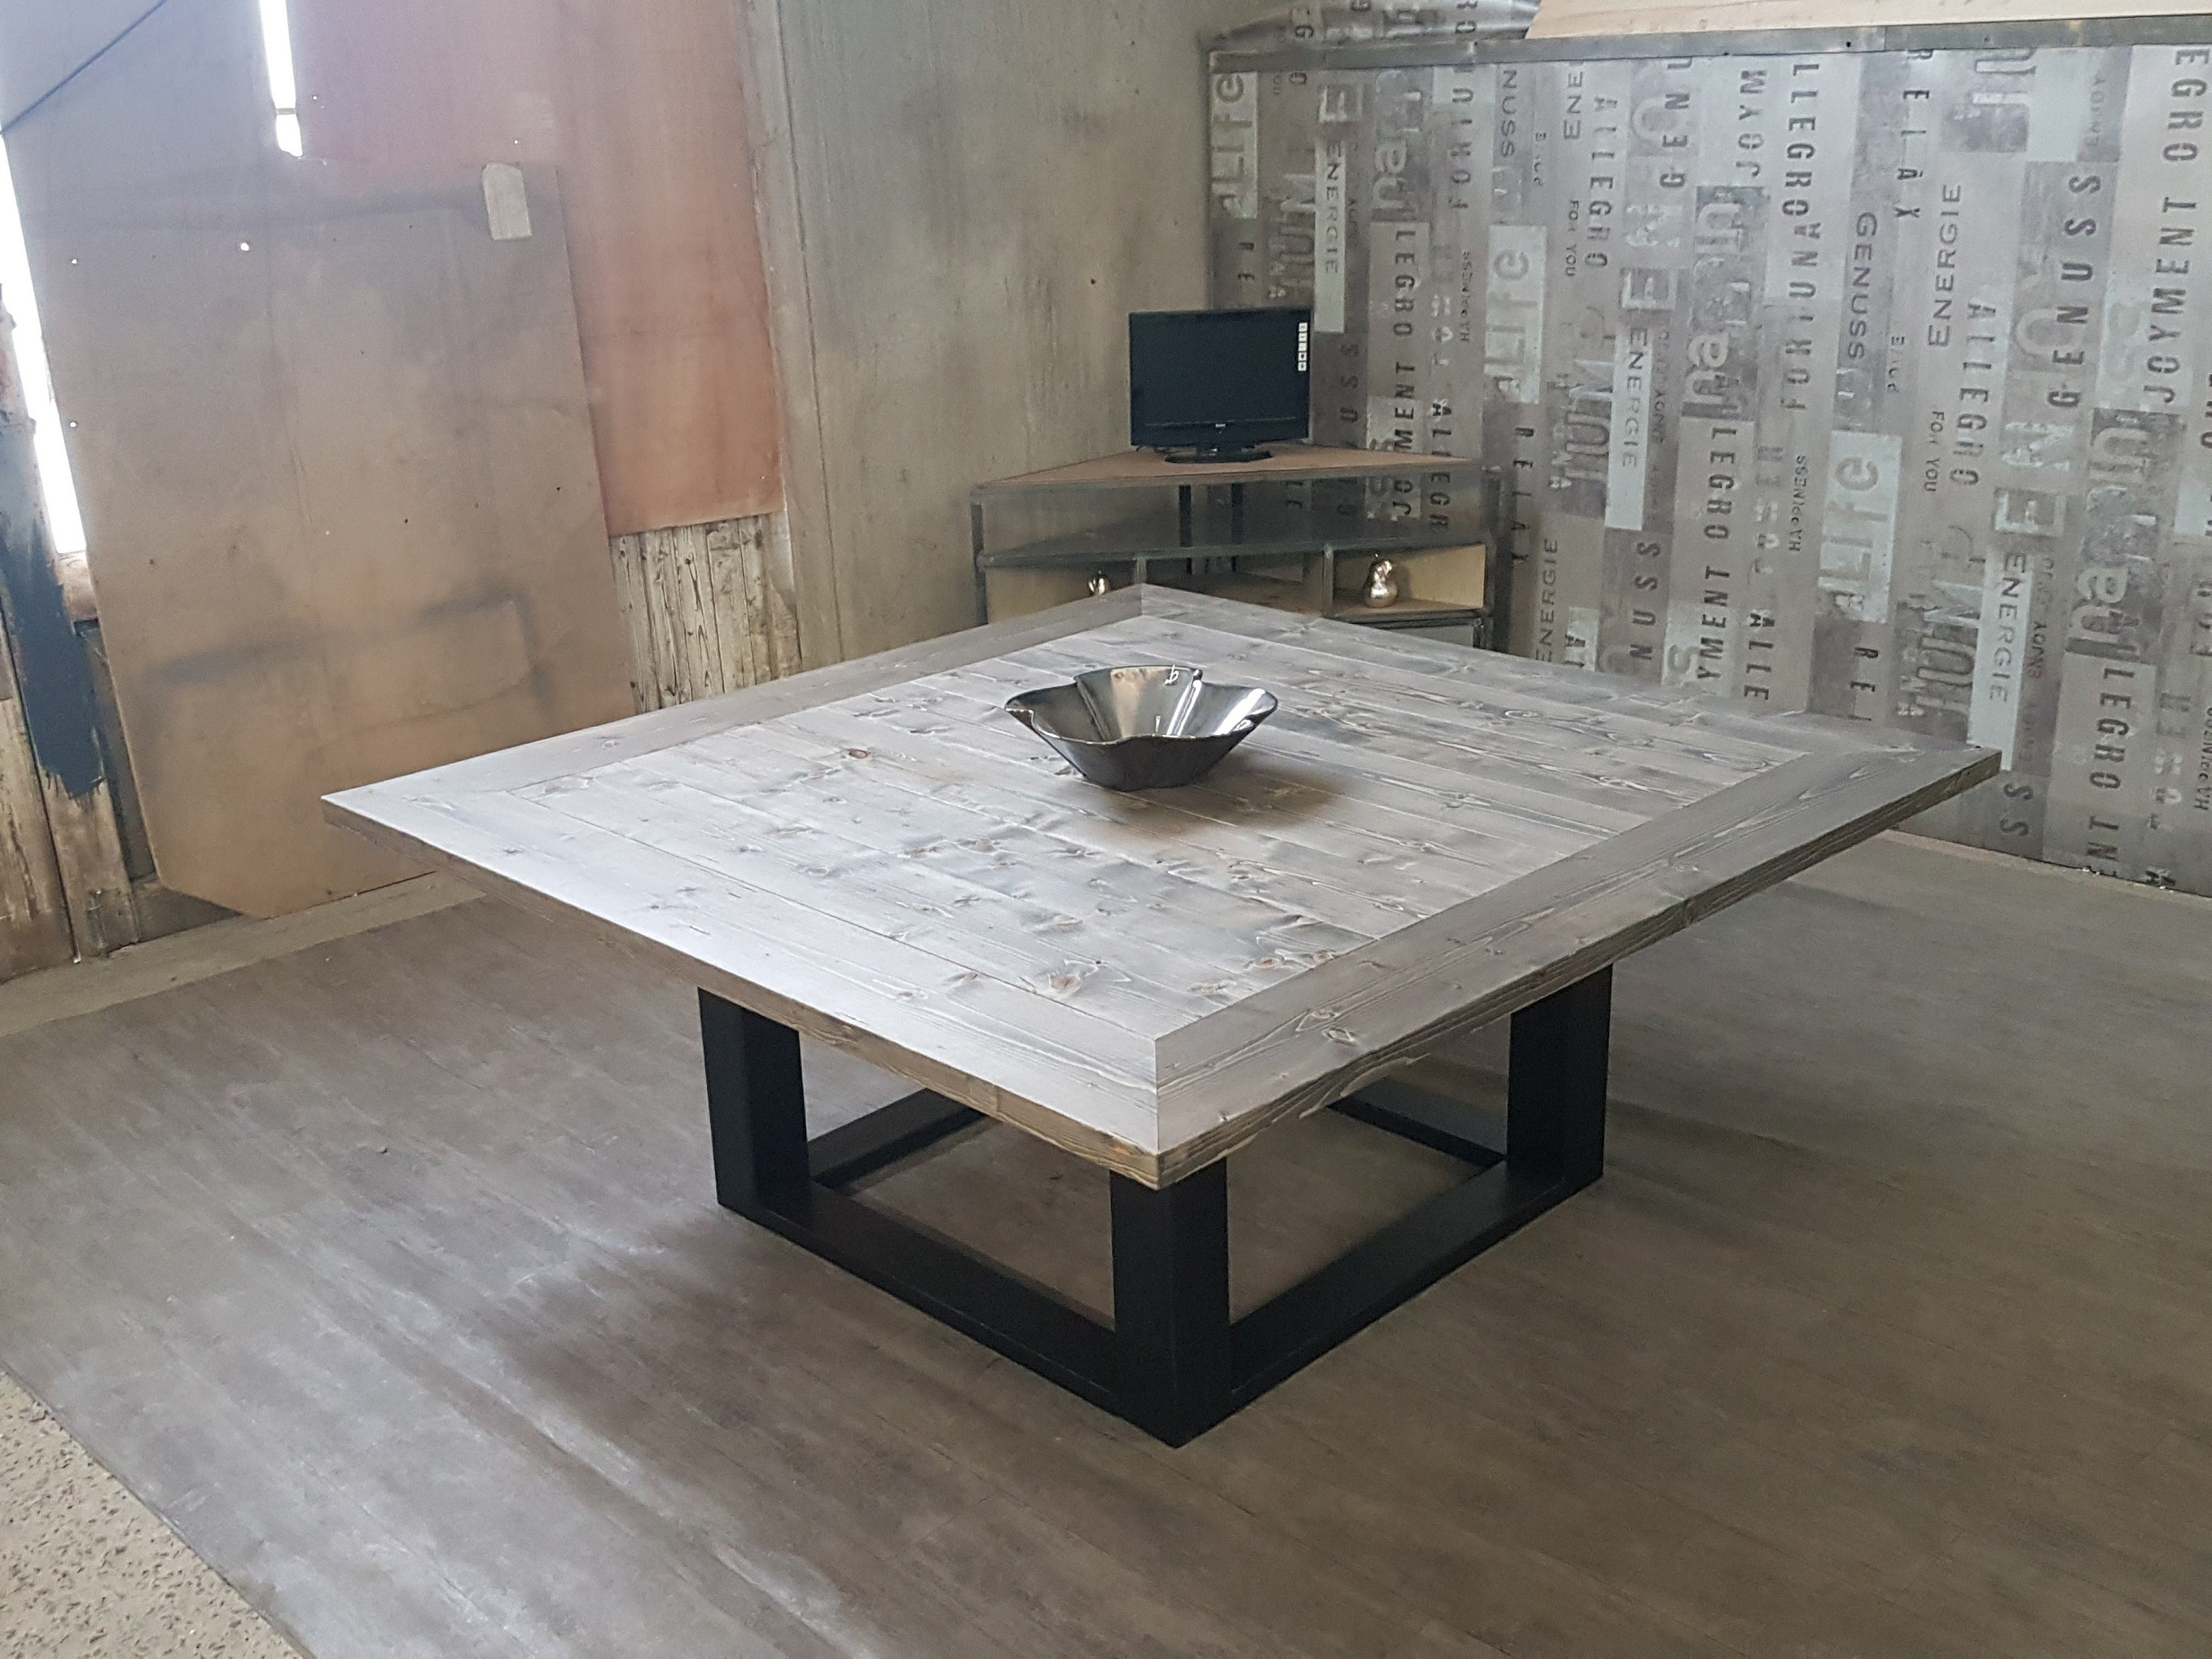 Emejing table salle a manger style atelier ideas for Grande table salle a manger